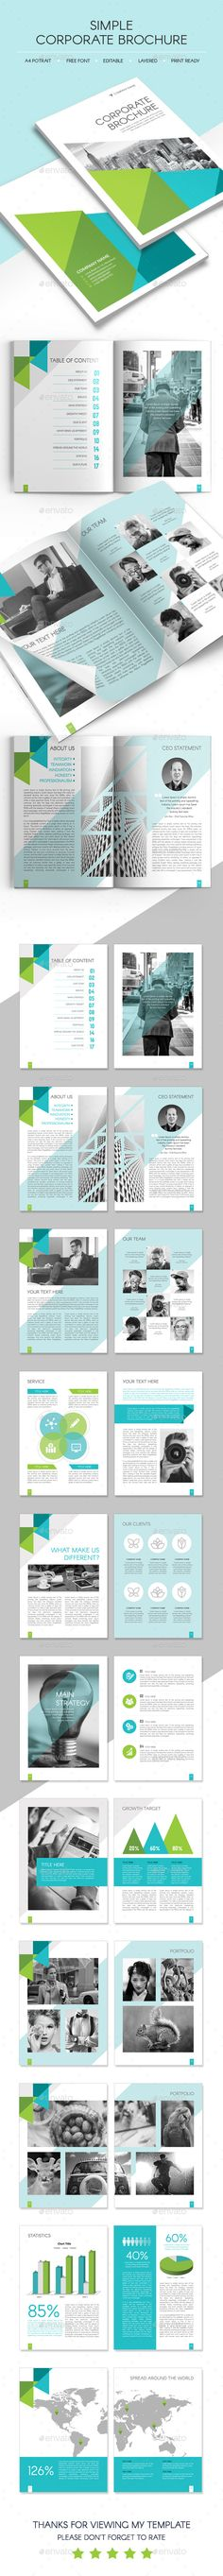 Simple Corporate Brochure Template #design Download: http://graphicriver.net/item/simple-corporate-brochure/14511212?ref=ksioks